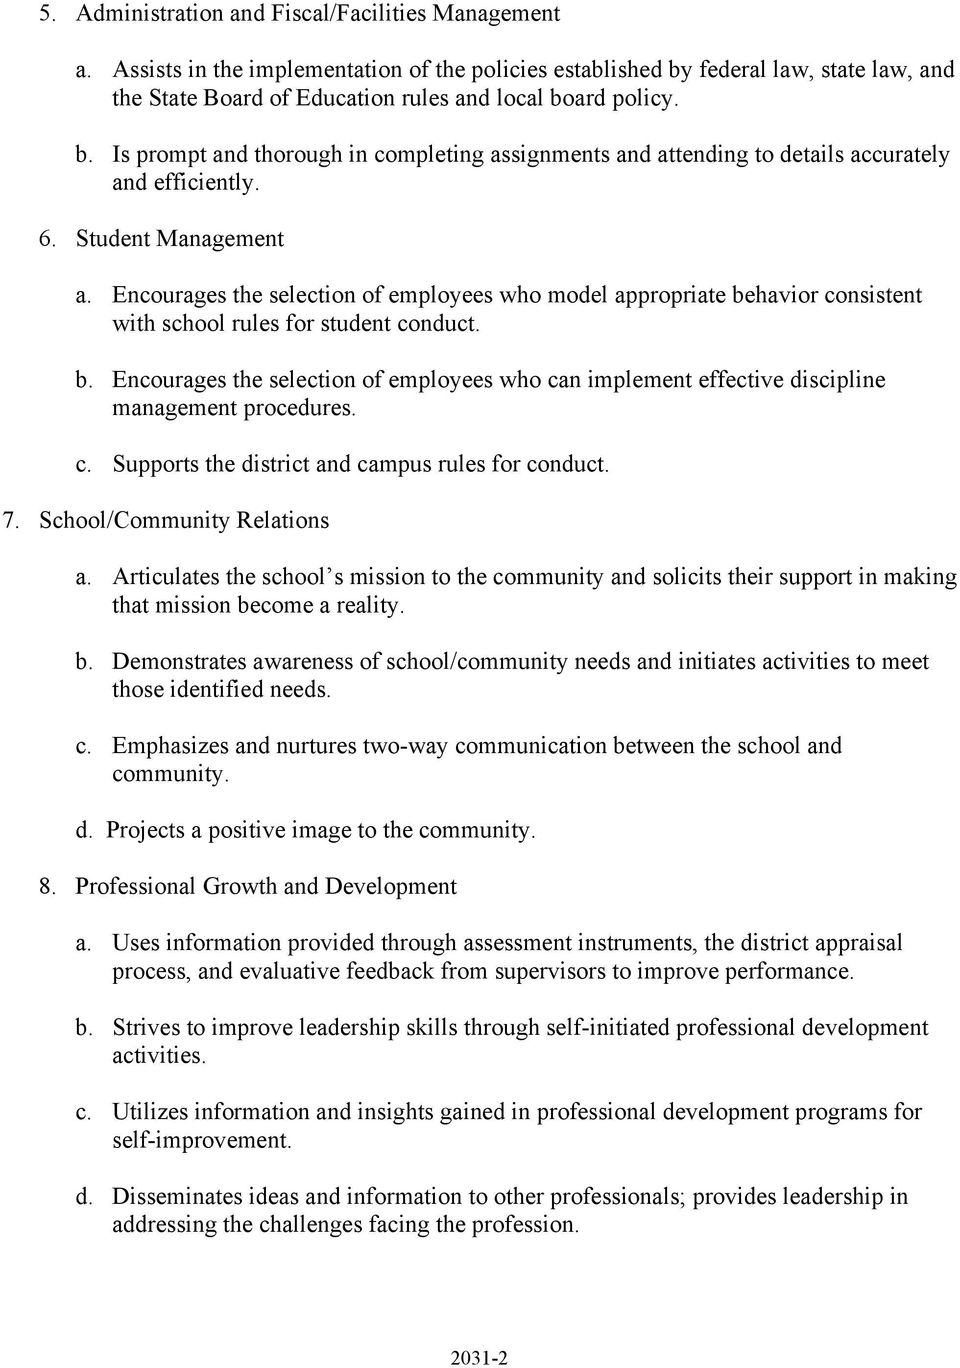 6. Student Management a. Encourages the selection of employees who model appropriate behavior consistent with school rules for student conduct. b. Encourages the selection of employees who can implement effective discipline management procedures.